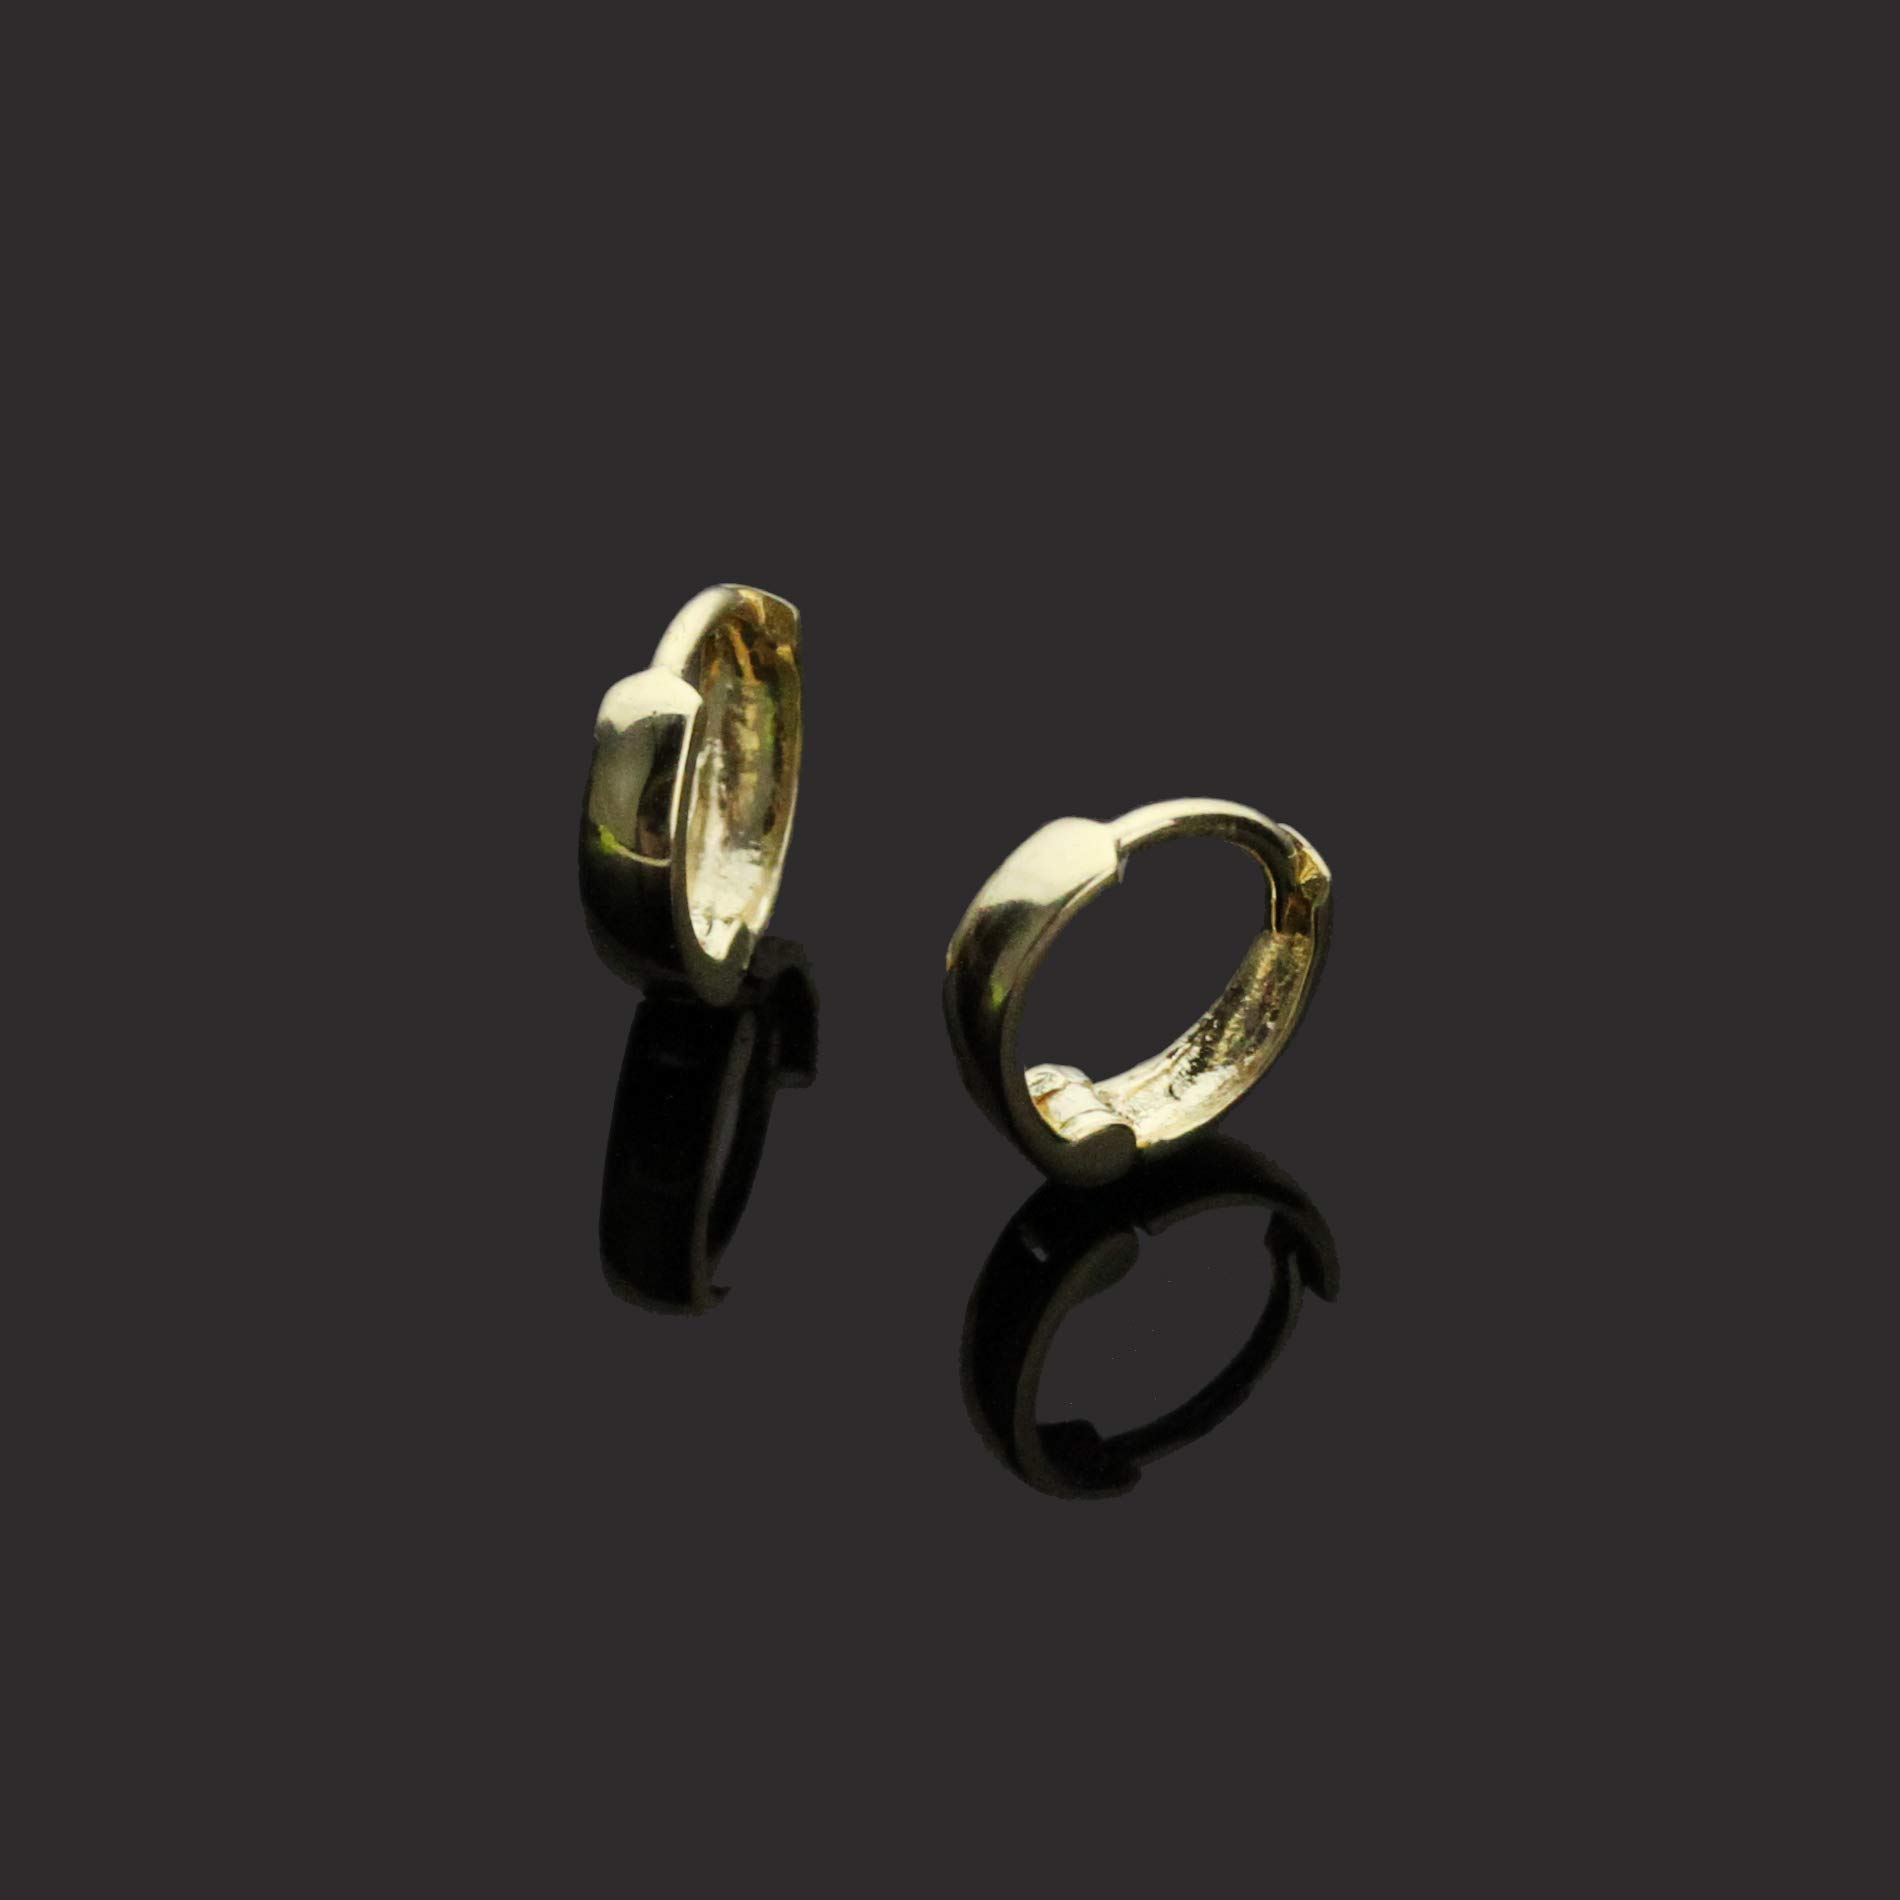 14K Yellow Gold Plain 2 X 6mm Domed Small Huggie Hoop Earrings by Double Accent (Image #5)